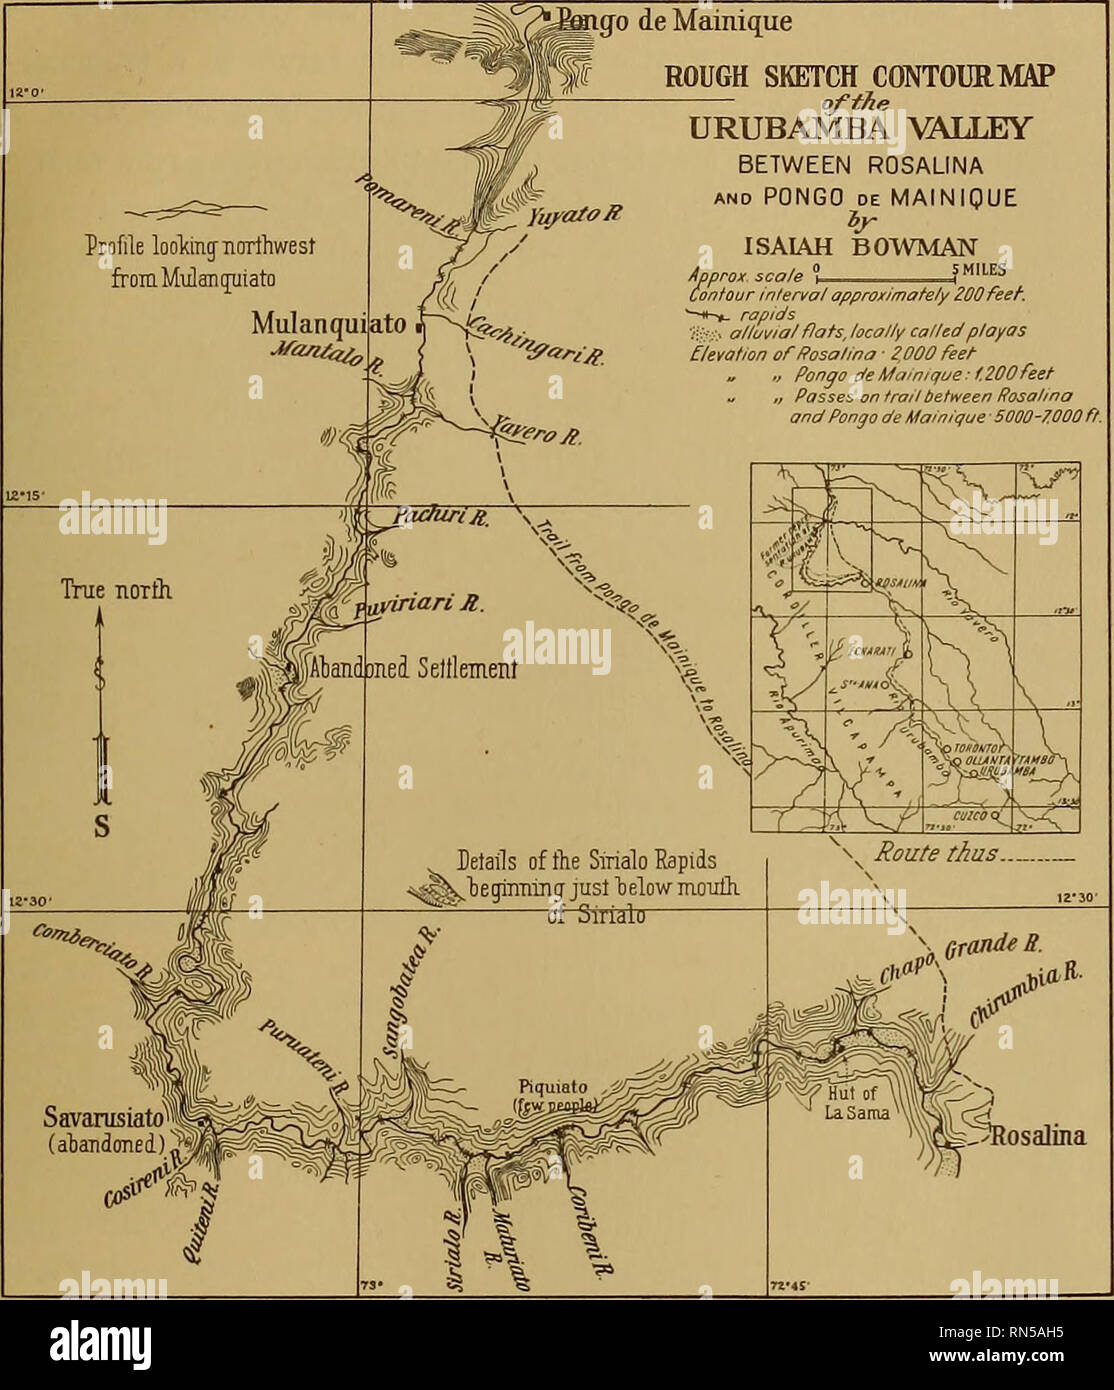 Image of: The Andes Of Southern Peru Geographical Reconnaissance Along The Seventy Third Meridian Yale Peruvian Expedition 1911 Physical Geography Geology The Rapids And Canyons Of The Urubamba Fig 8 Sketch Map Showing The Route